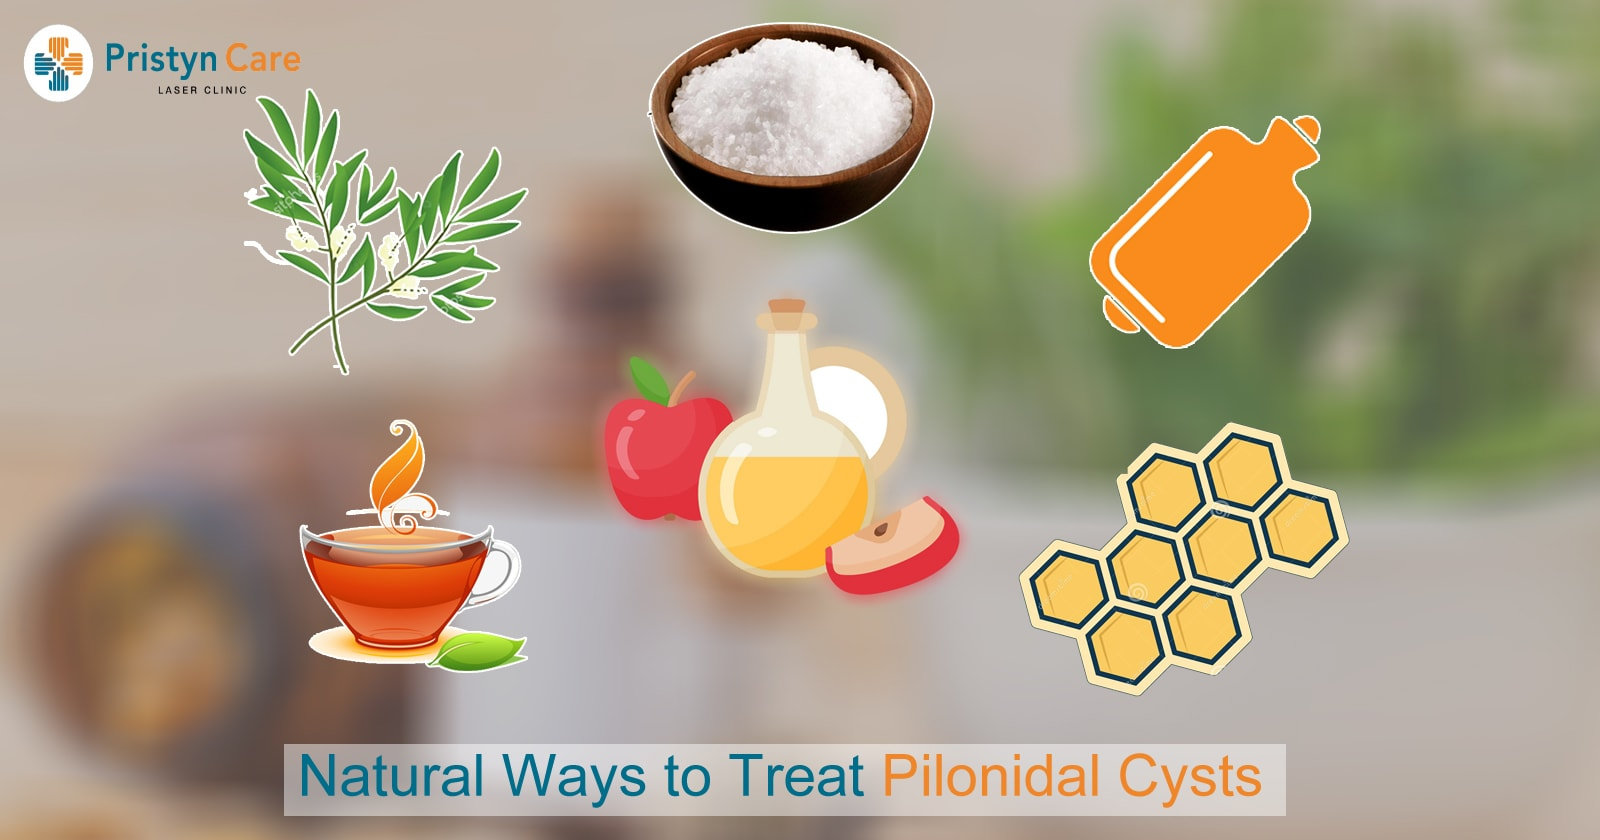 natural-ways-to-treat-pilonidal-cysts-min